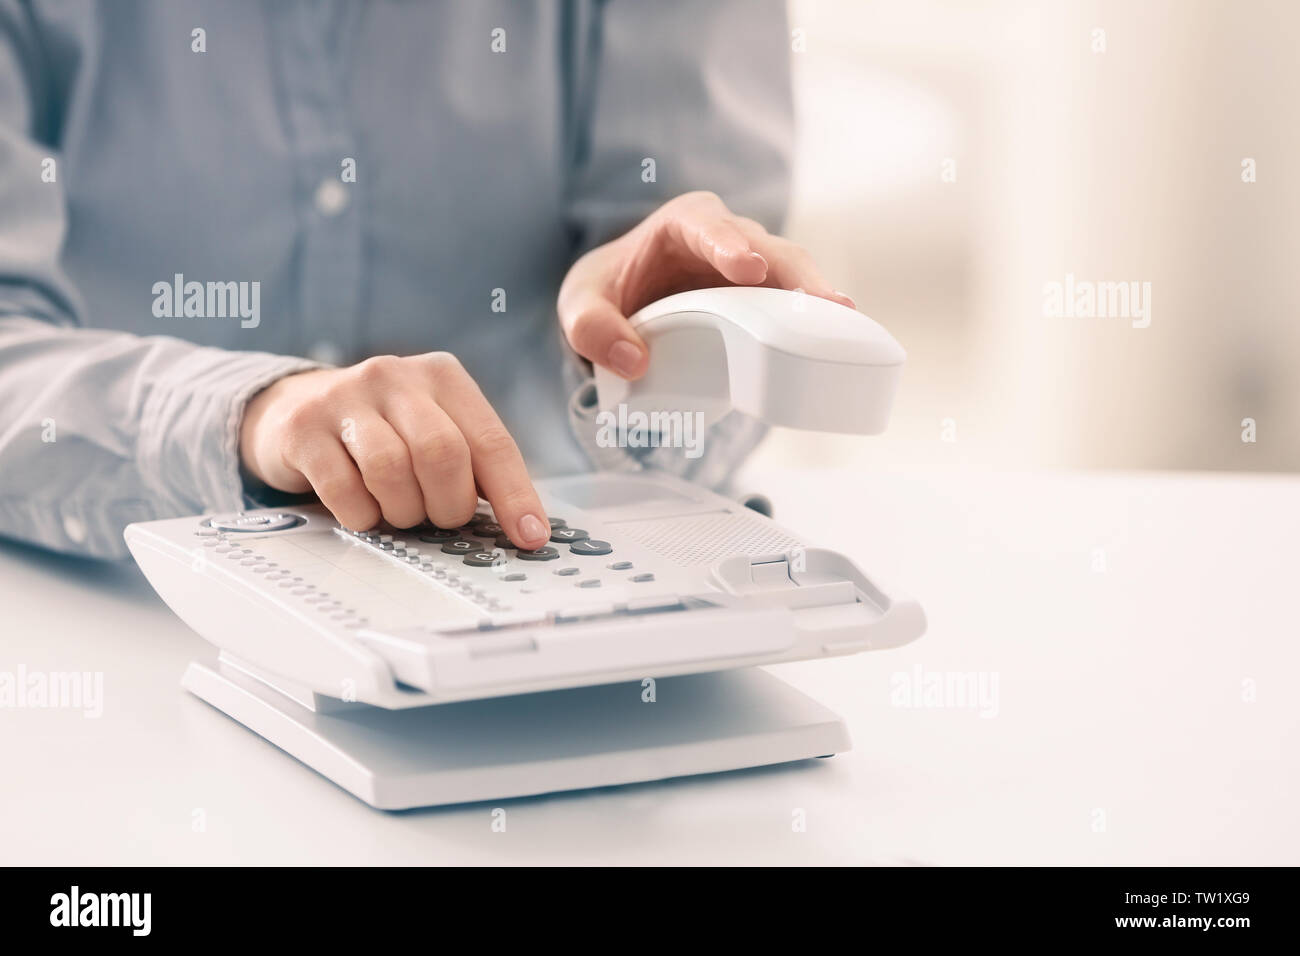 Woman dialing telephone number in office - Stock Image